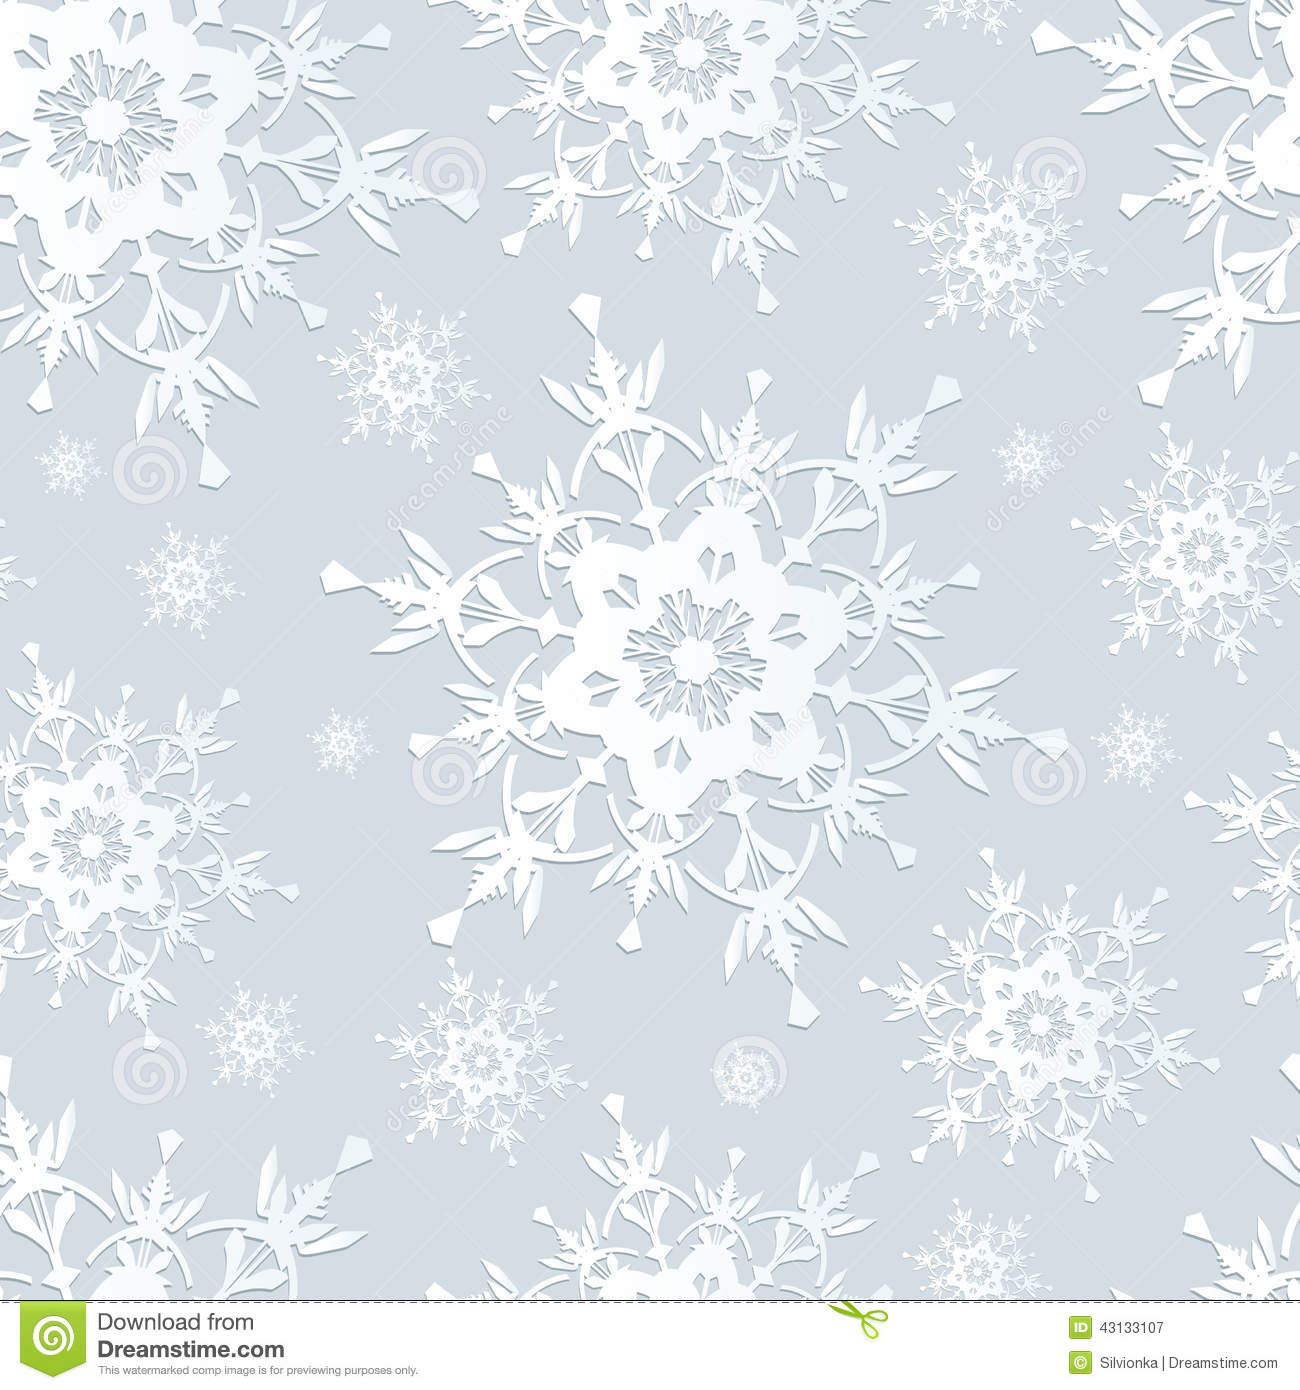 Falling Snow Wallpaper Iphone 5 Seamless Pattern Grey With Snowflakes Stock Vector